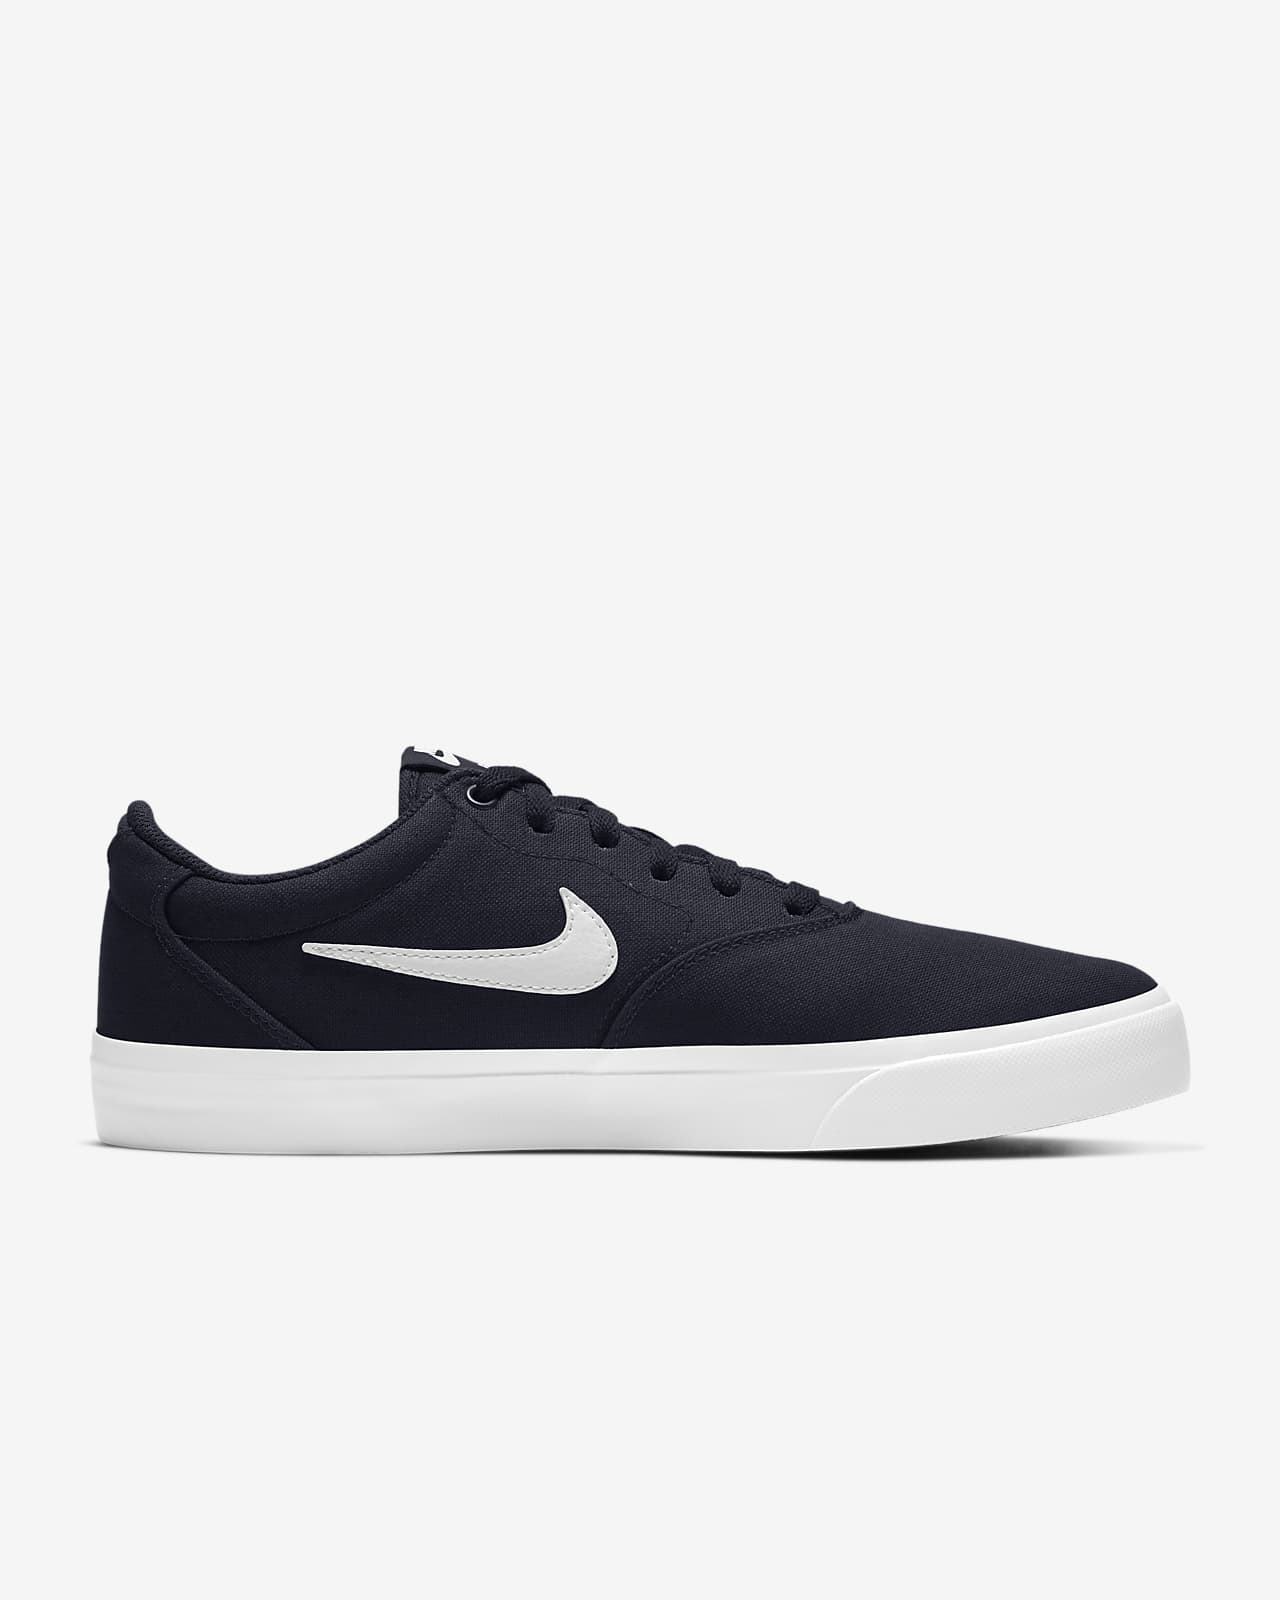 Soldes > nike sb charge canvas > en stock